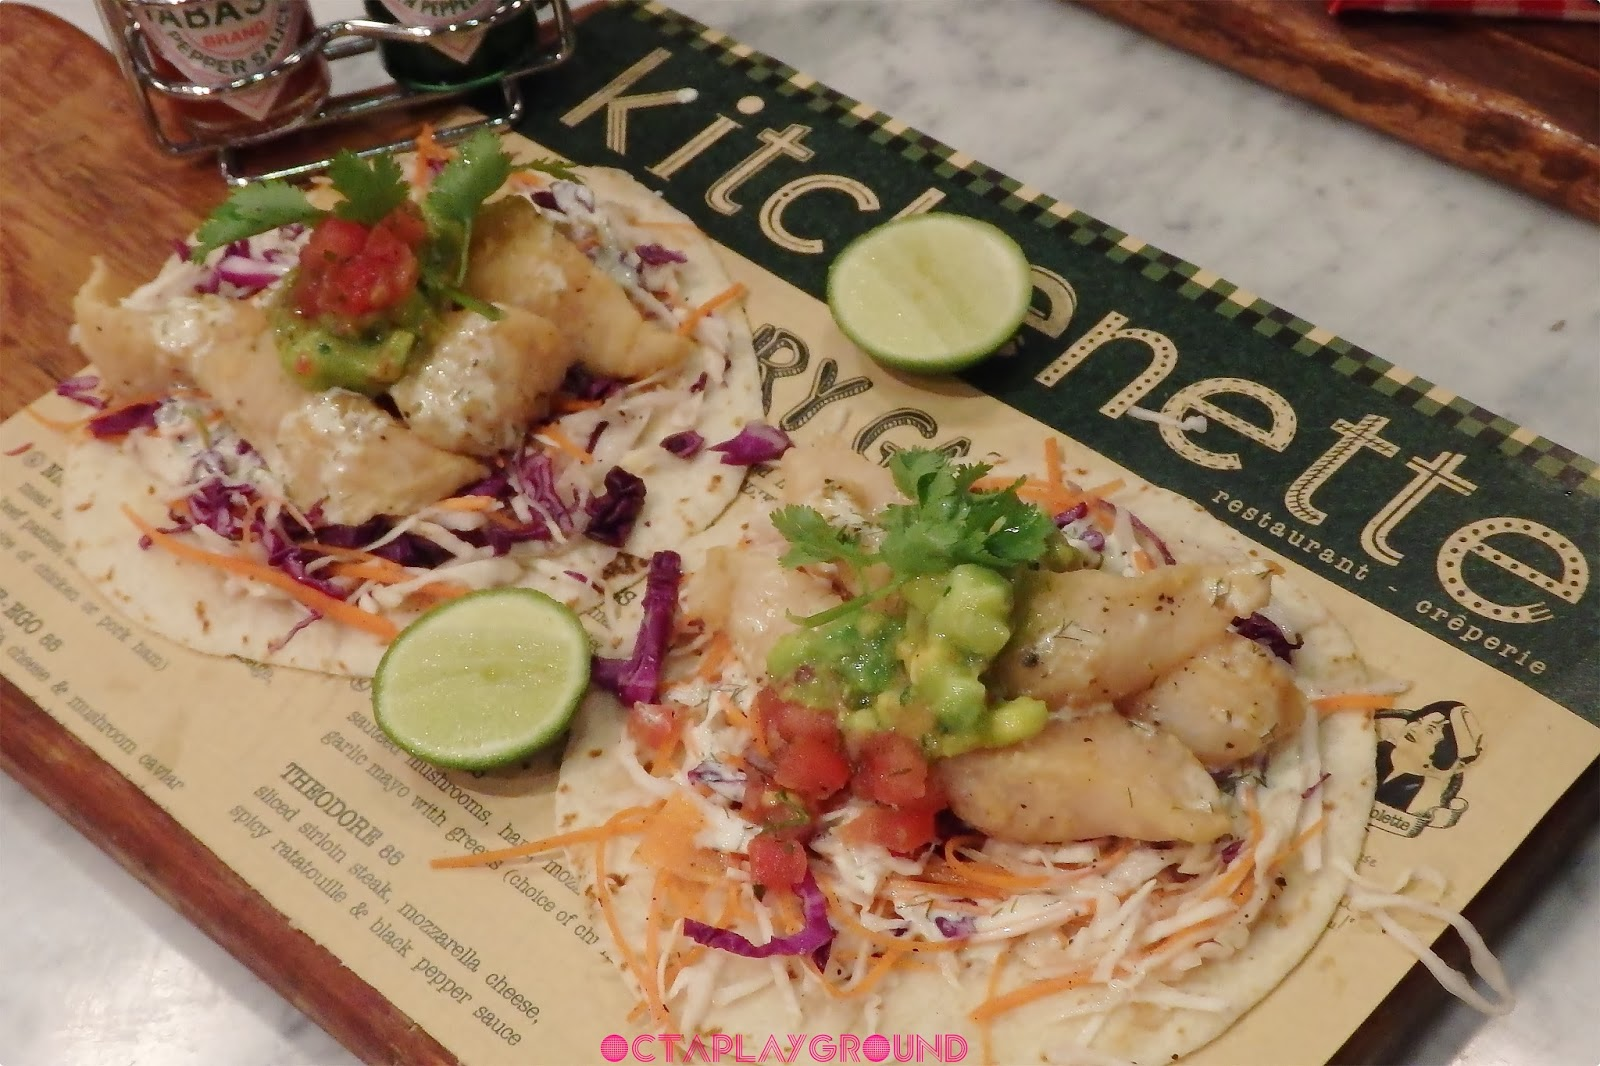 Baja Fried Fish Tacos with Avocado & Homemade Salsa  IDR 75.000